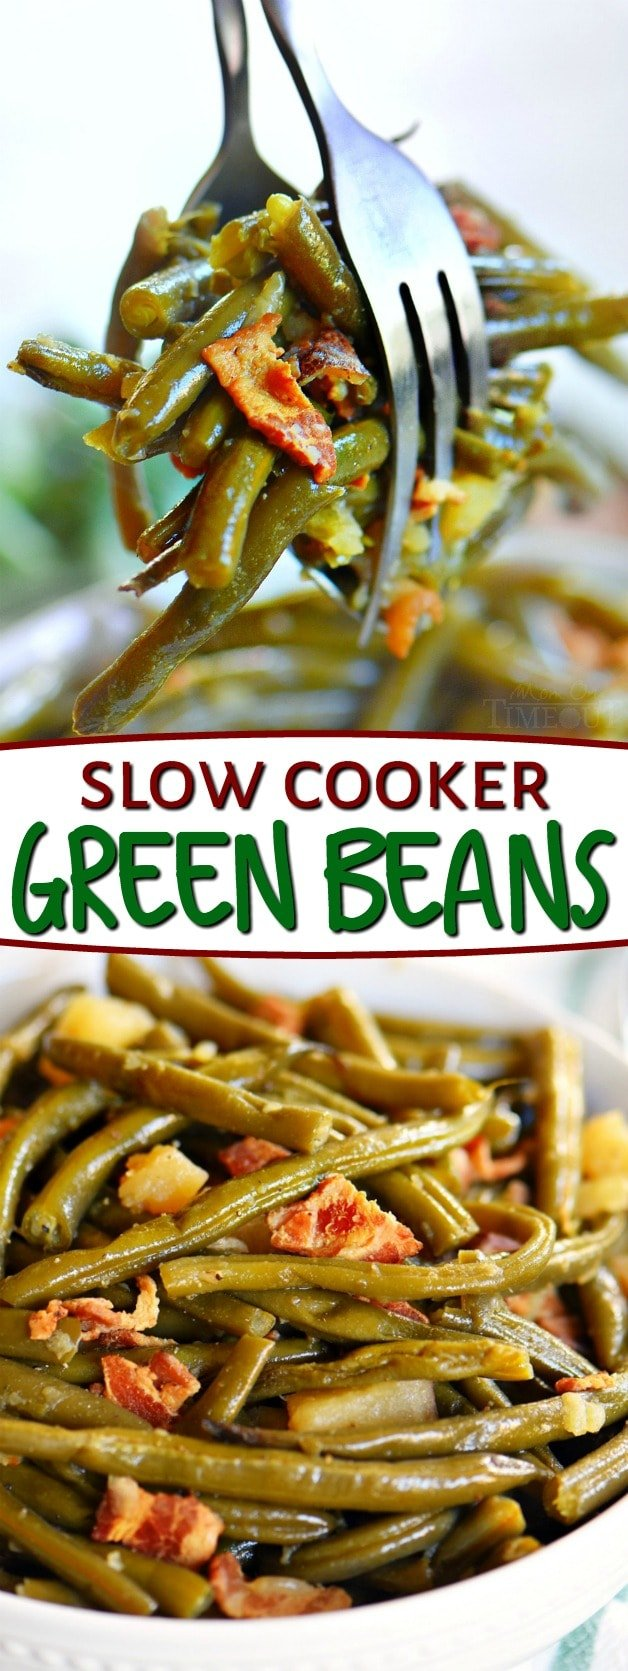 slow-cooker-green-beans-collage